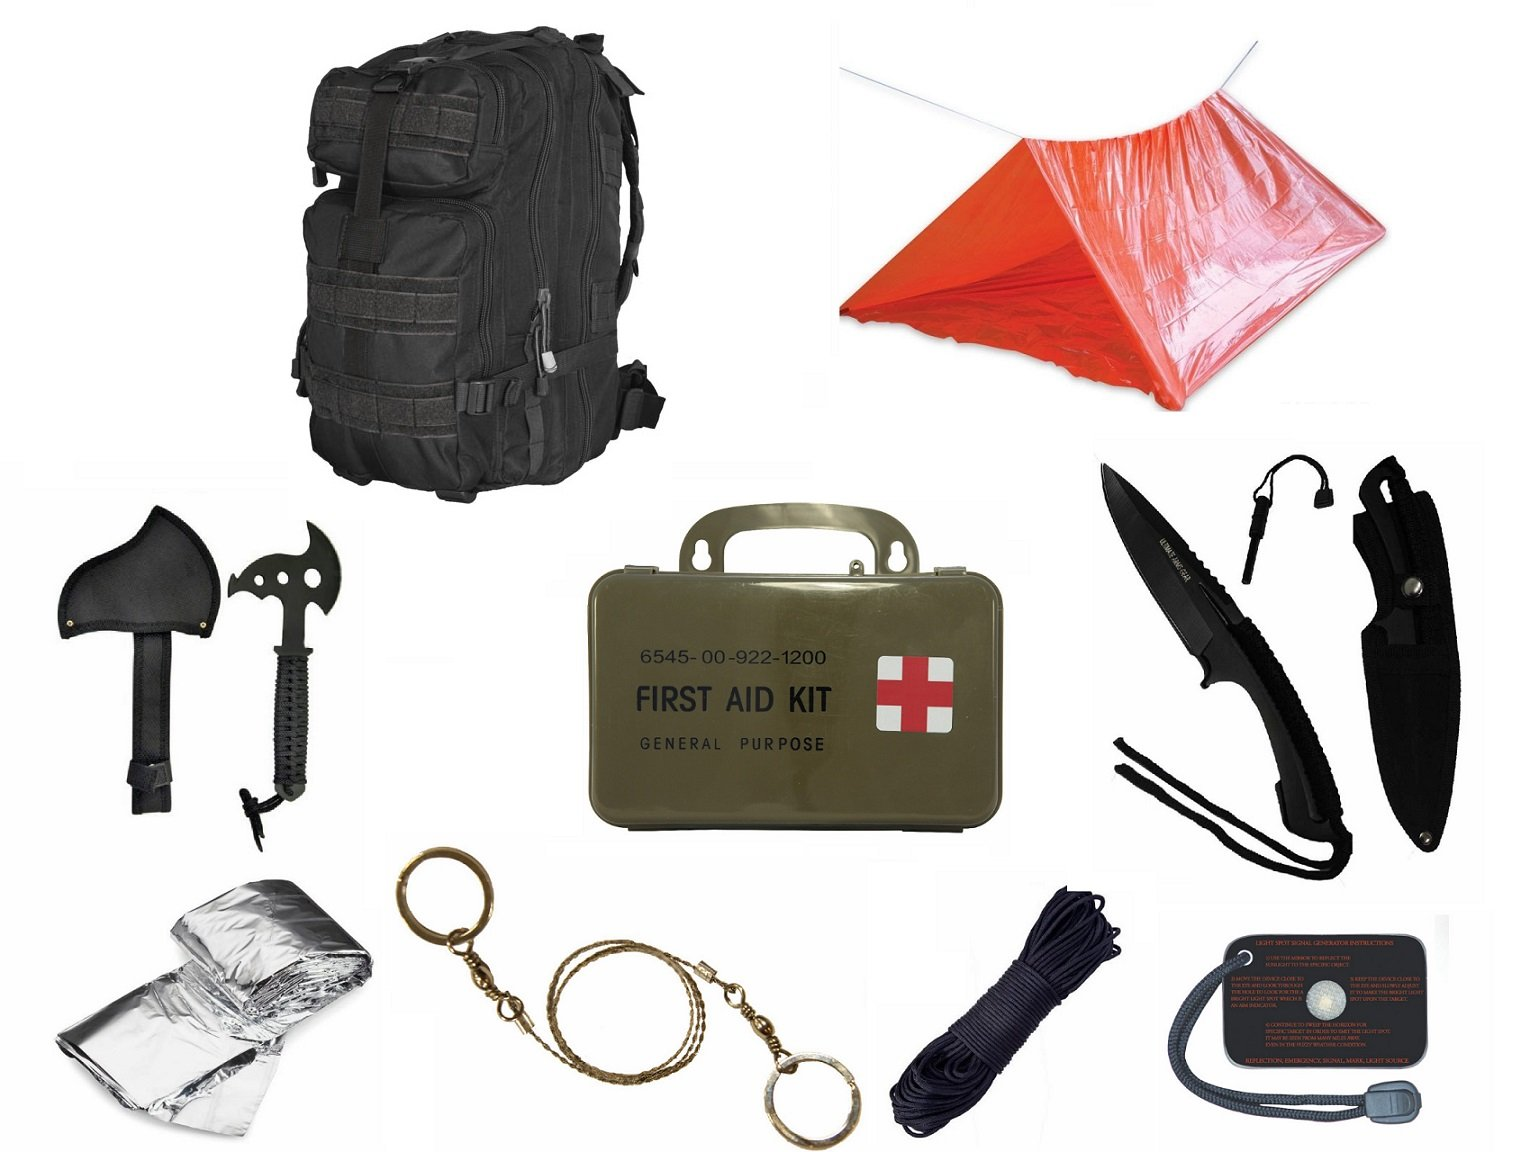 Ultimate Arms Gear Level 3 Assault MOLLE Black Backpack Kit; Signal Mirror, Polarshield Blanket, Knife Fire Starter, Wire Saw, Axe, 50' Foot Paracord, Camping Tube Tent & First Aid Kit